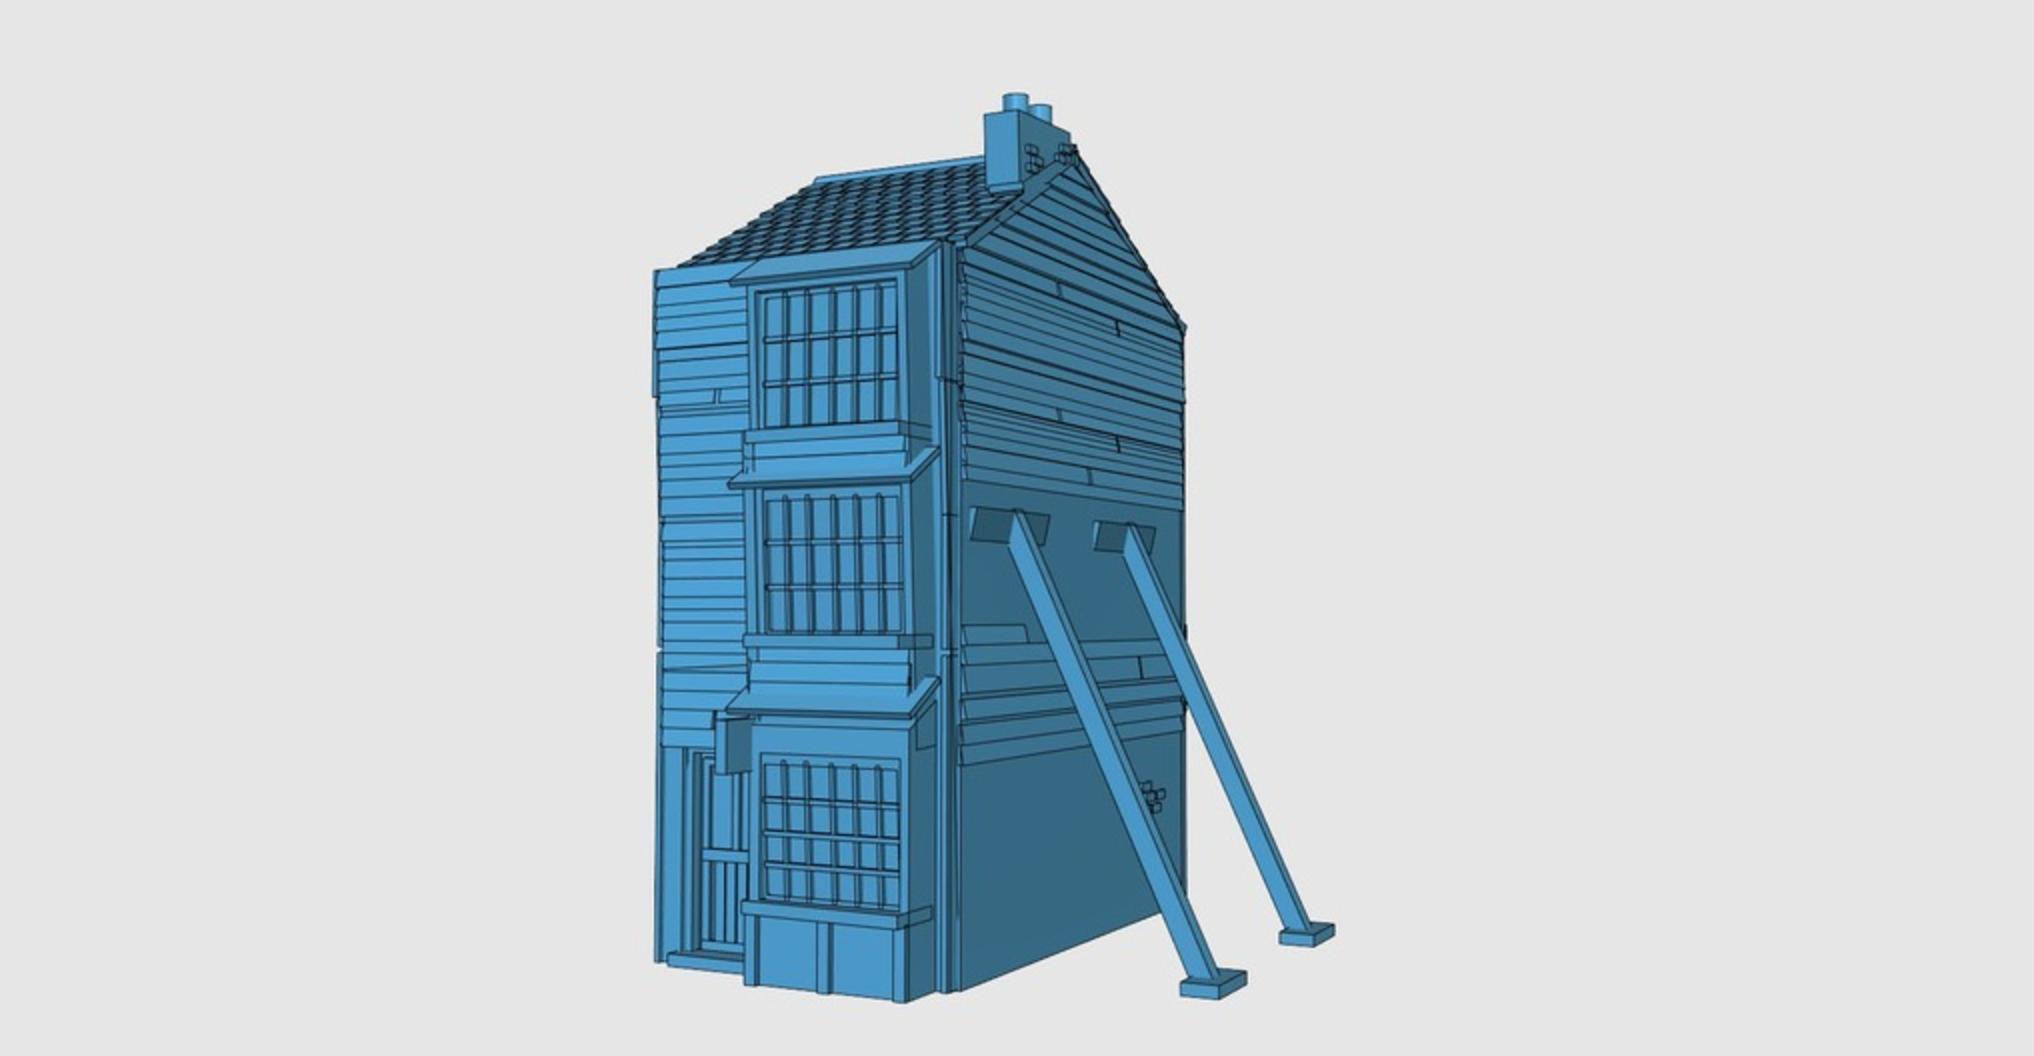 Capture d'écran 2017-06-30 à 10.05.32.png Download free STL file Ripper's London - Wooden Building / Shop • 3D printer design, Earsling